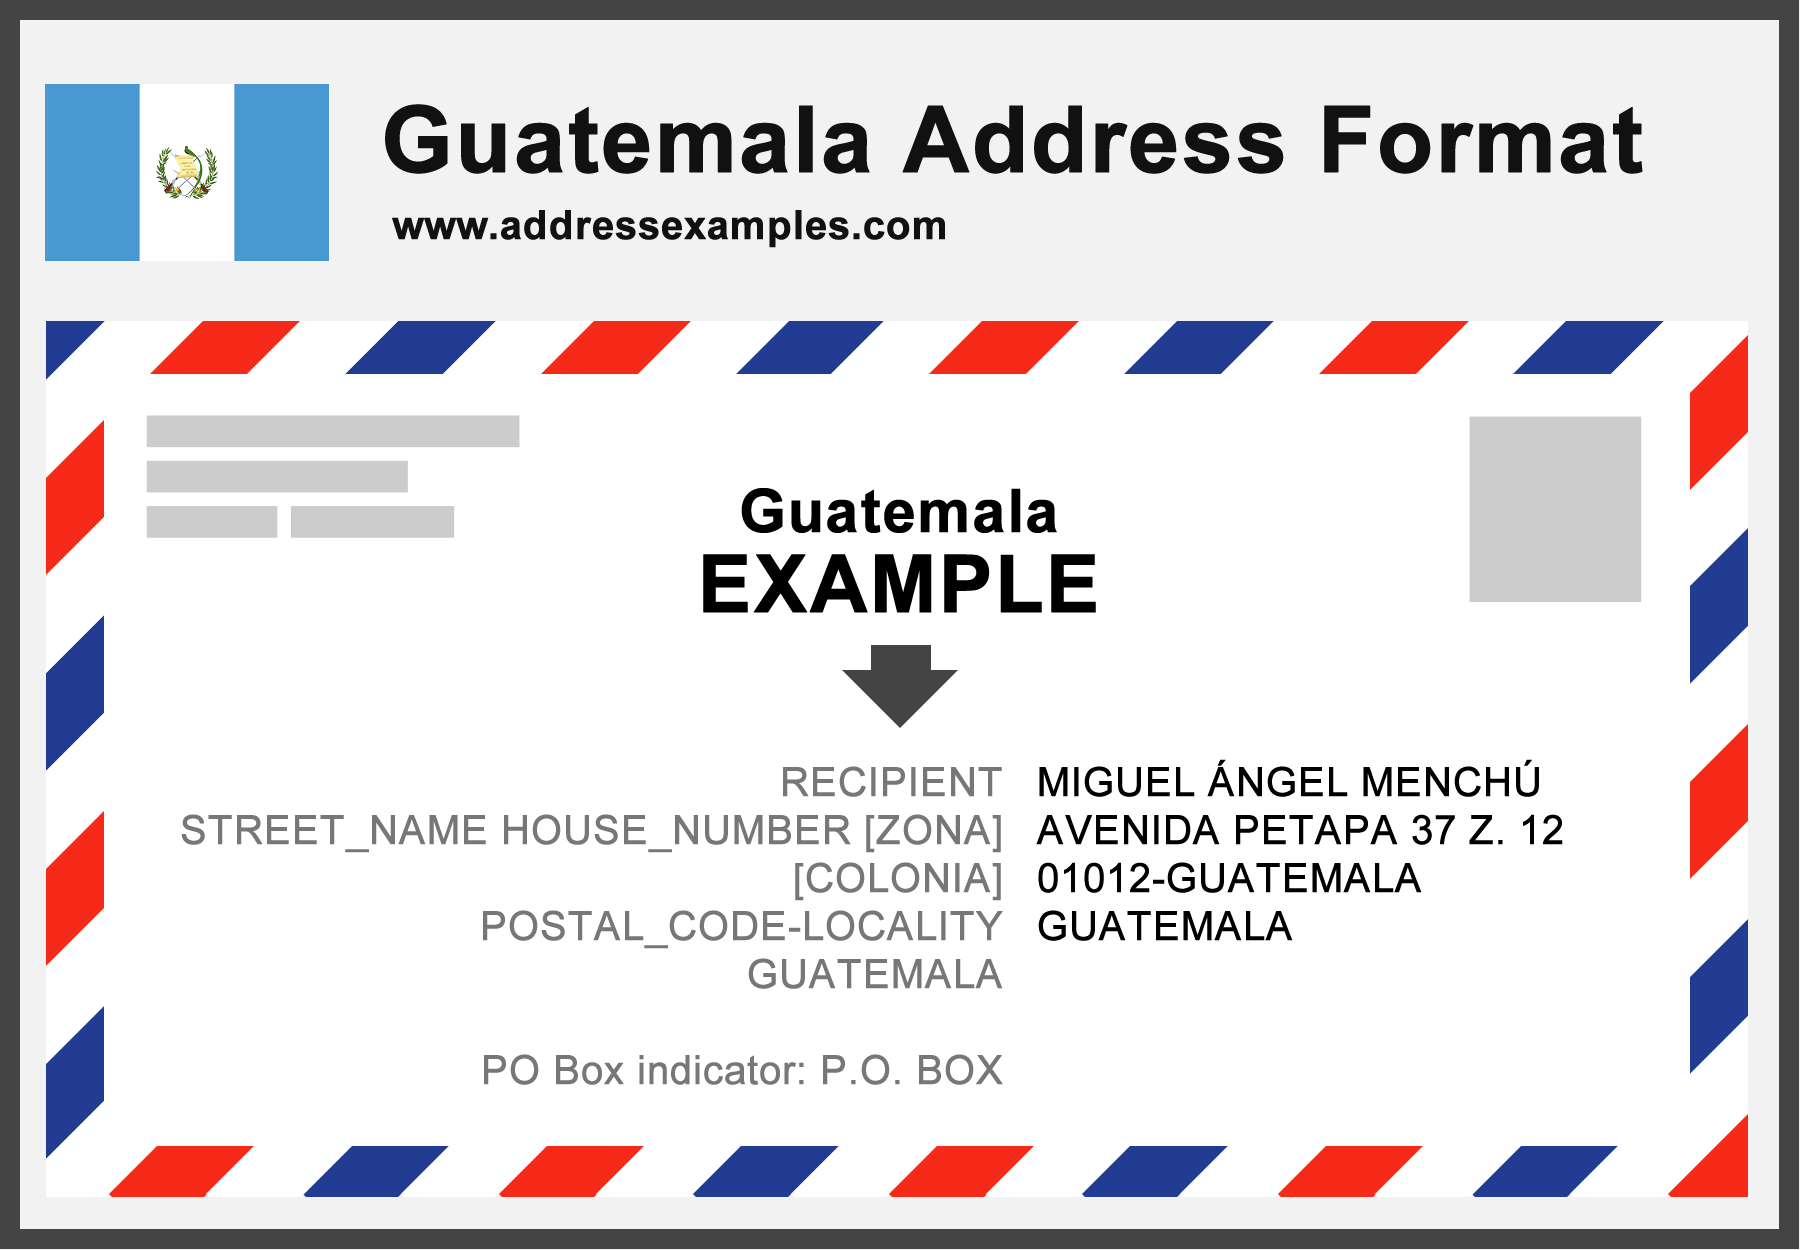 guatemala address format